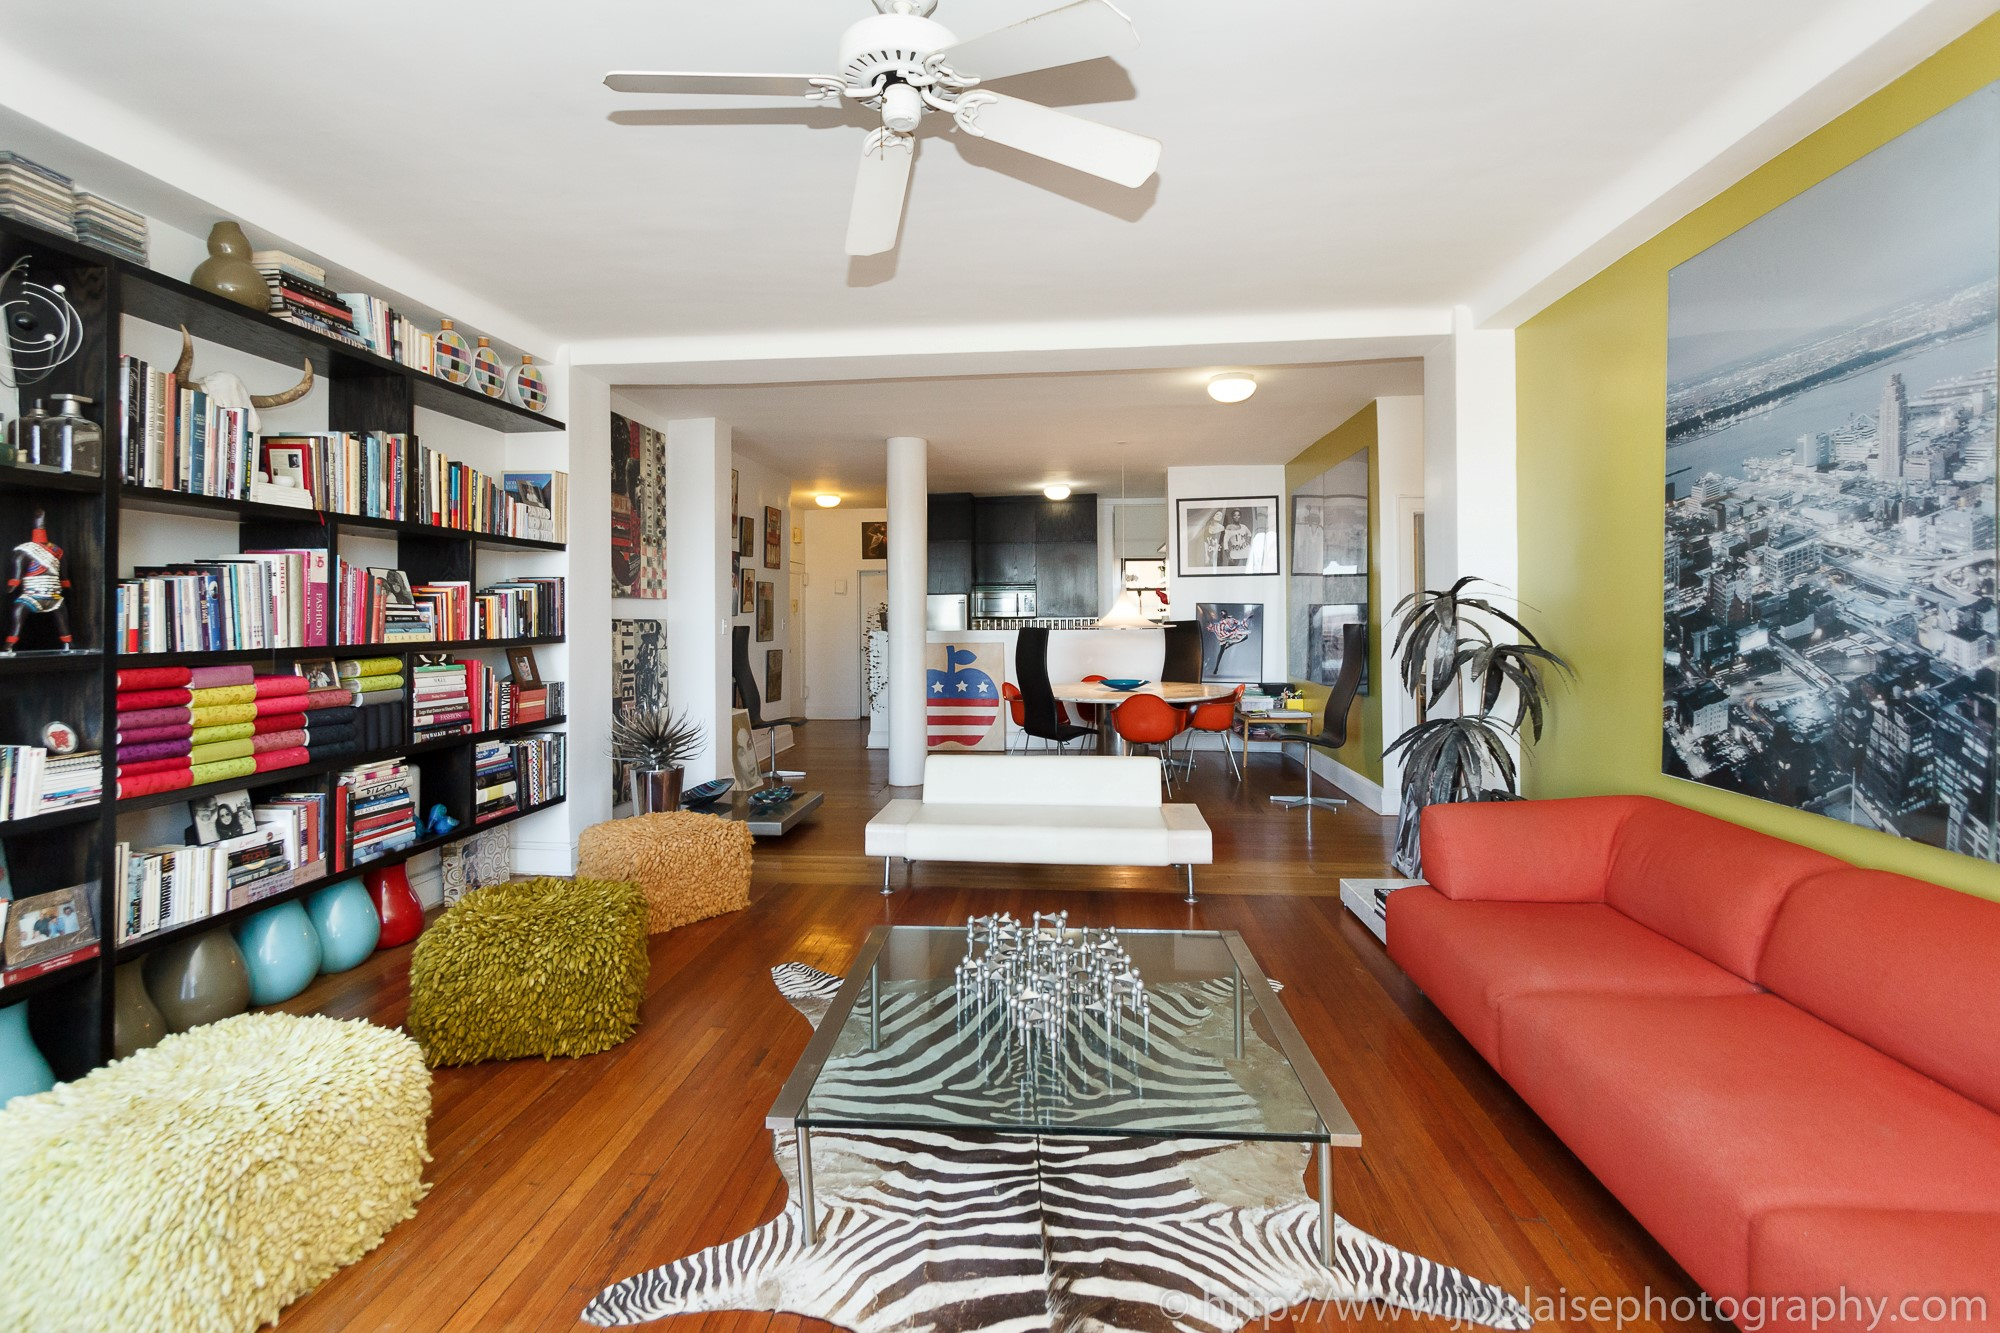 Blog jp blaise photography for Apartments in upper west side